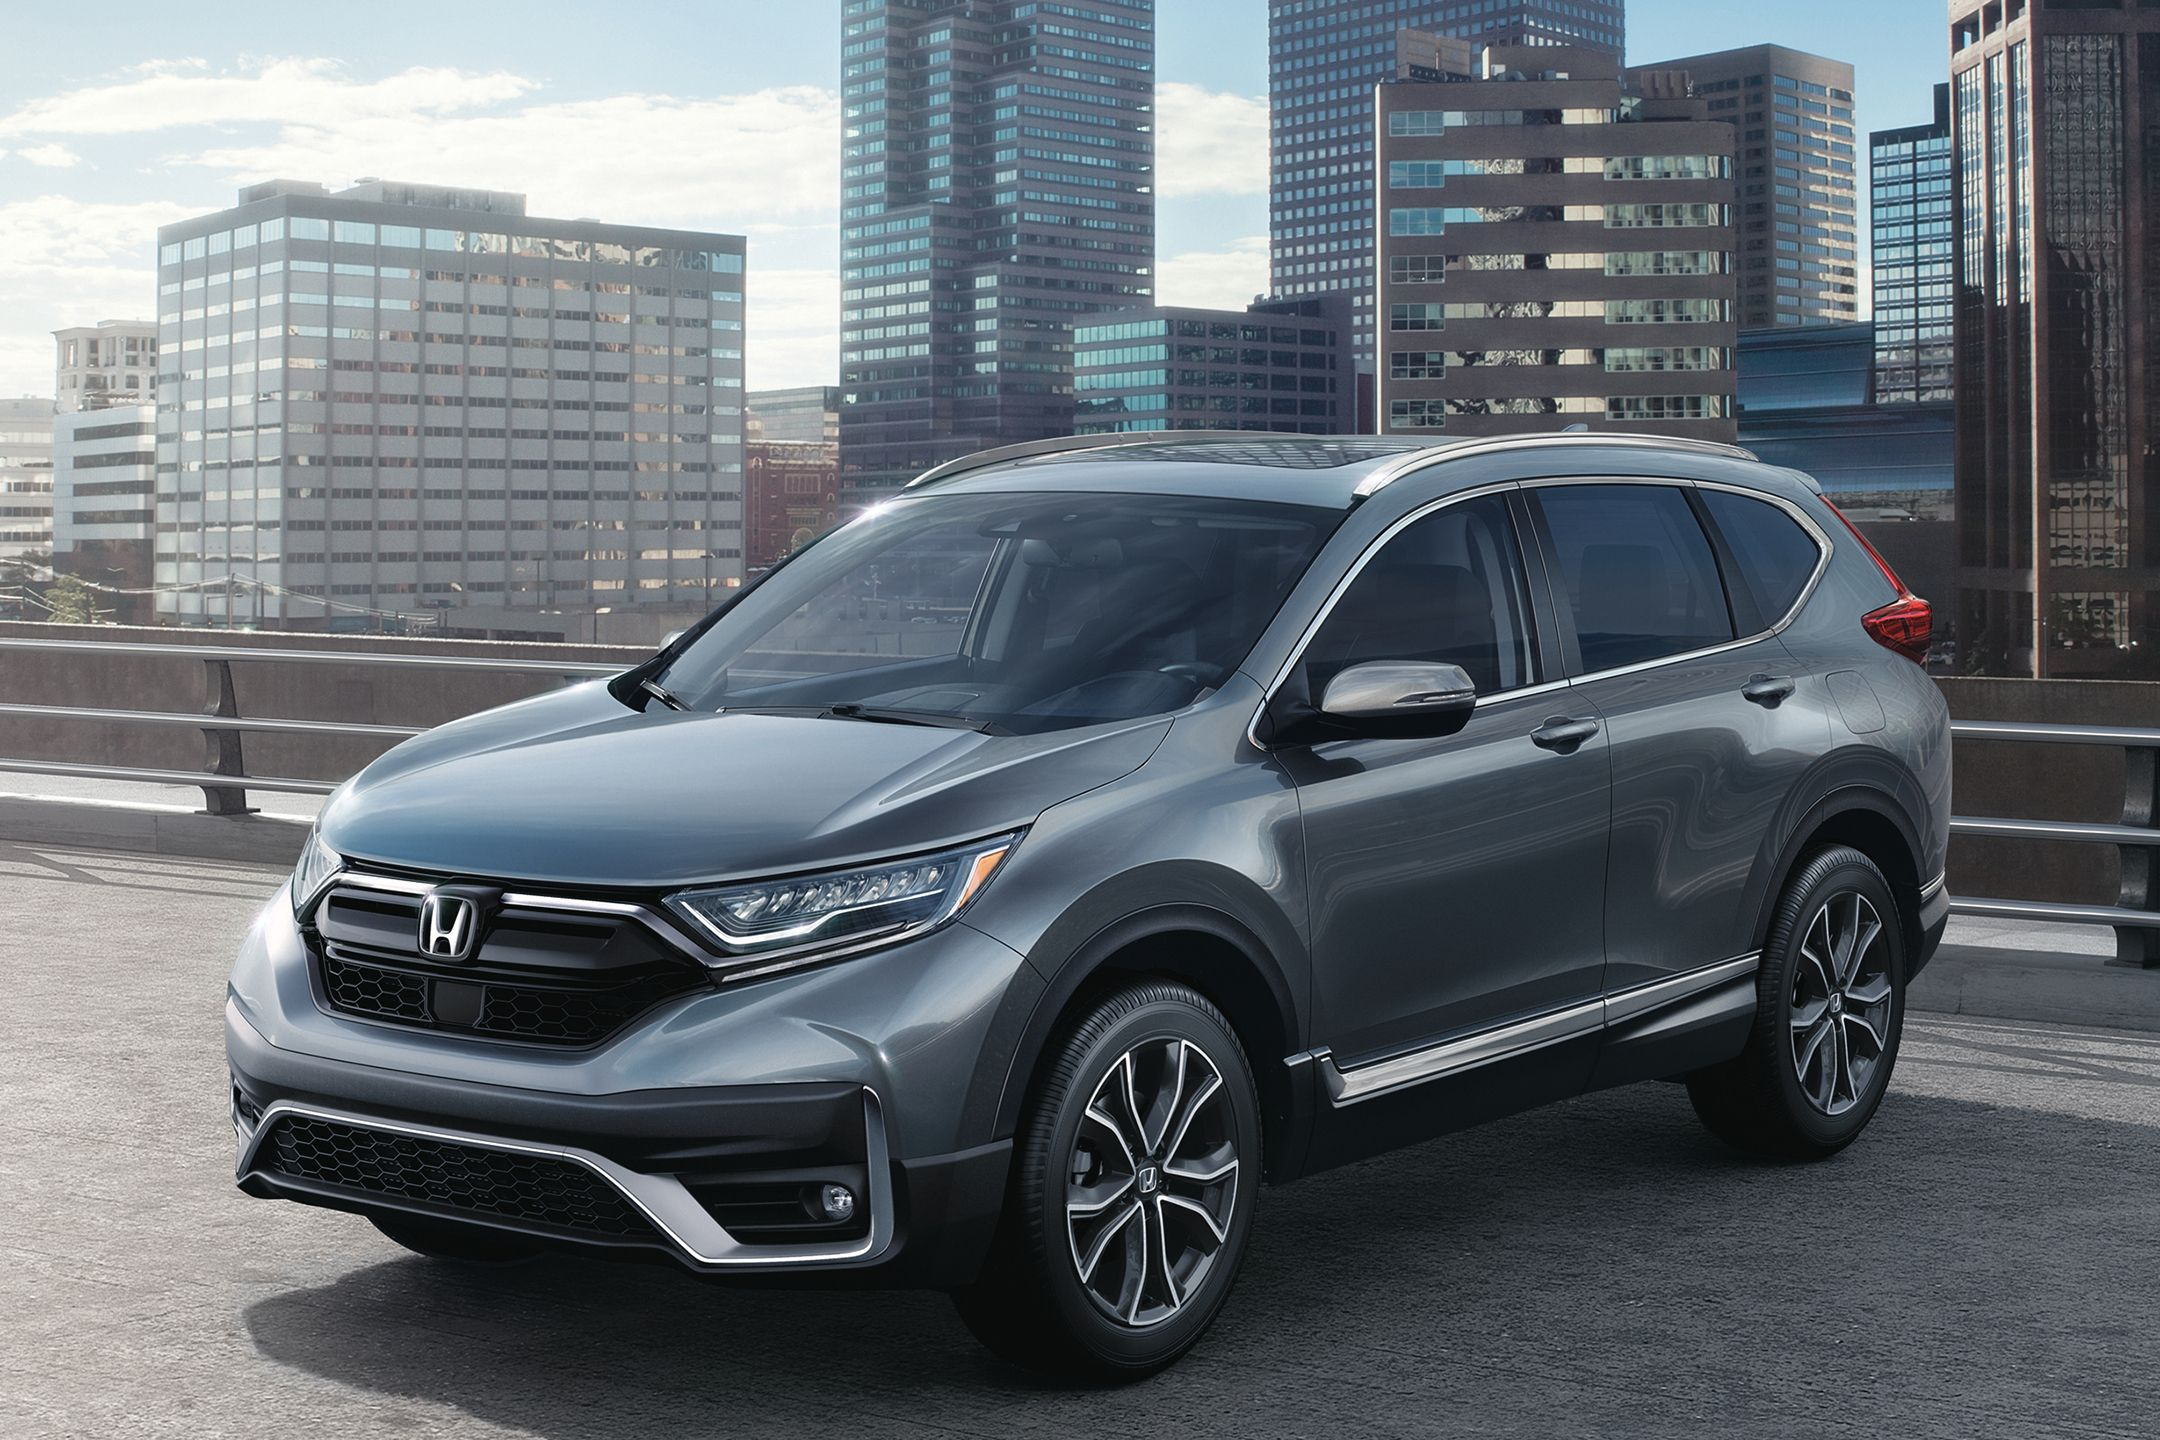 Honda CRV Which Should You Buy, 2019 or 2020? in 2020